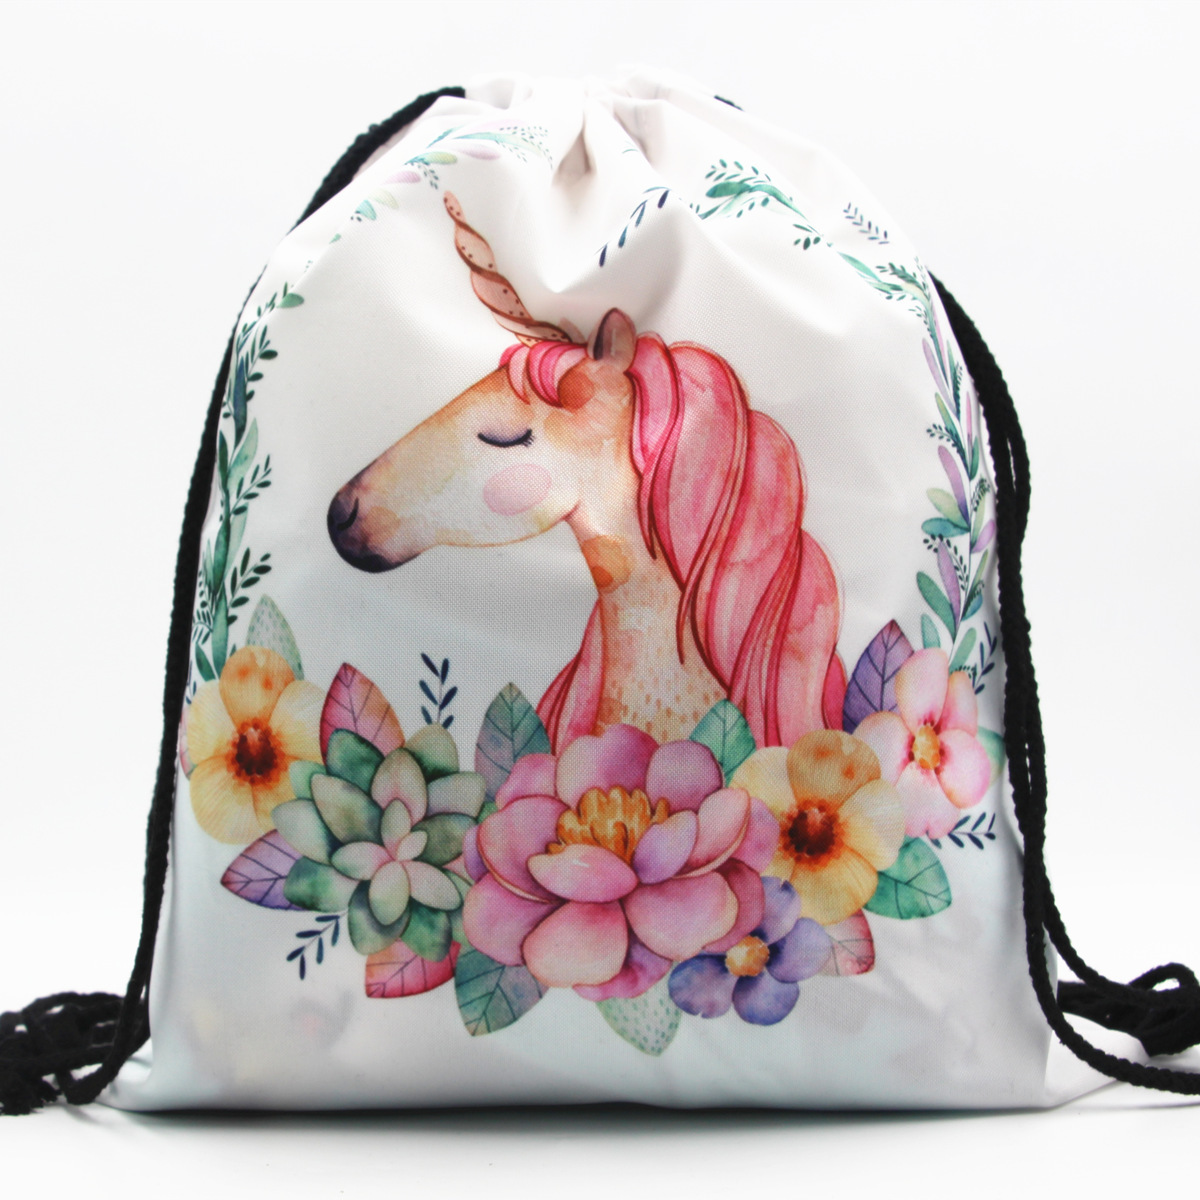 25 Color Unicorn 3D Printing Drawstring Backpack Newest Vintage College Students School Bagpack Girls Mochila Sack Storage Bags forudesigsn printing backpack boys 3d animal schnauzer backpacks school bags for girls college bags student backpack mochila